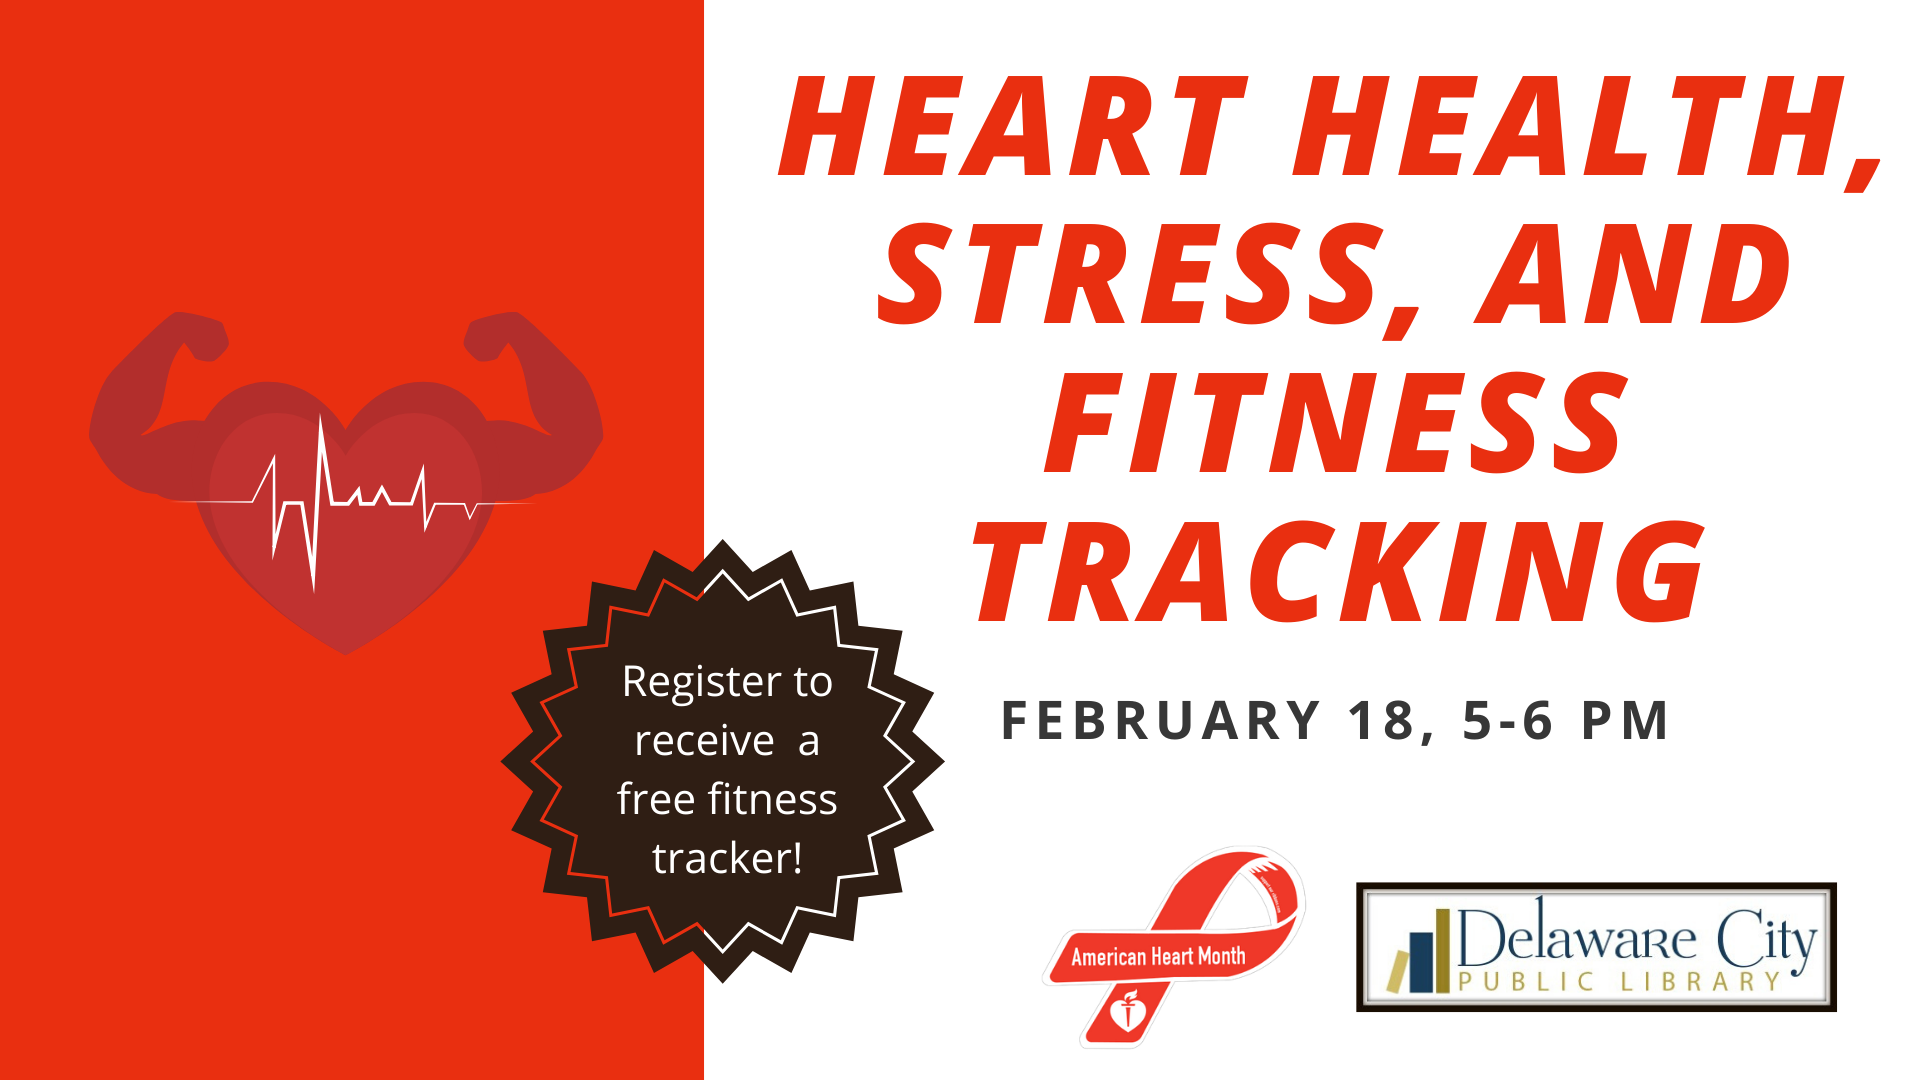 Heart Health, Stress, and Fitness Tracking